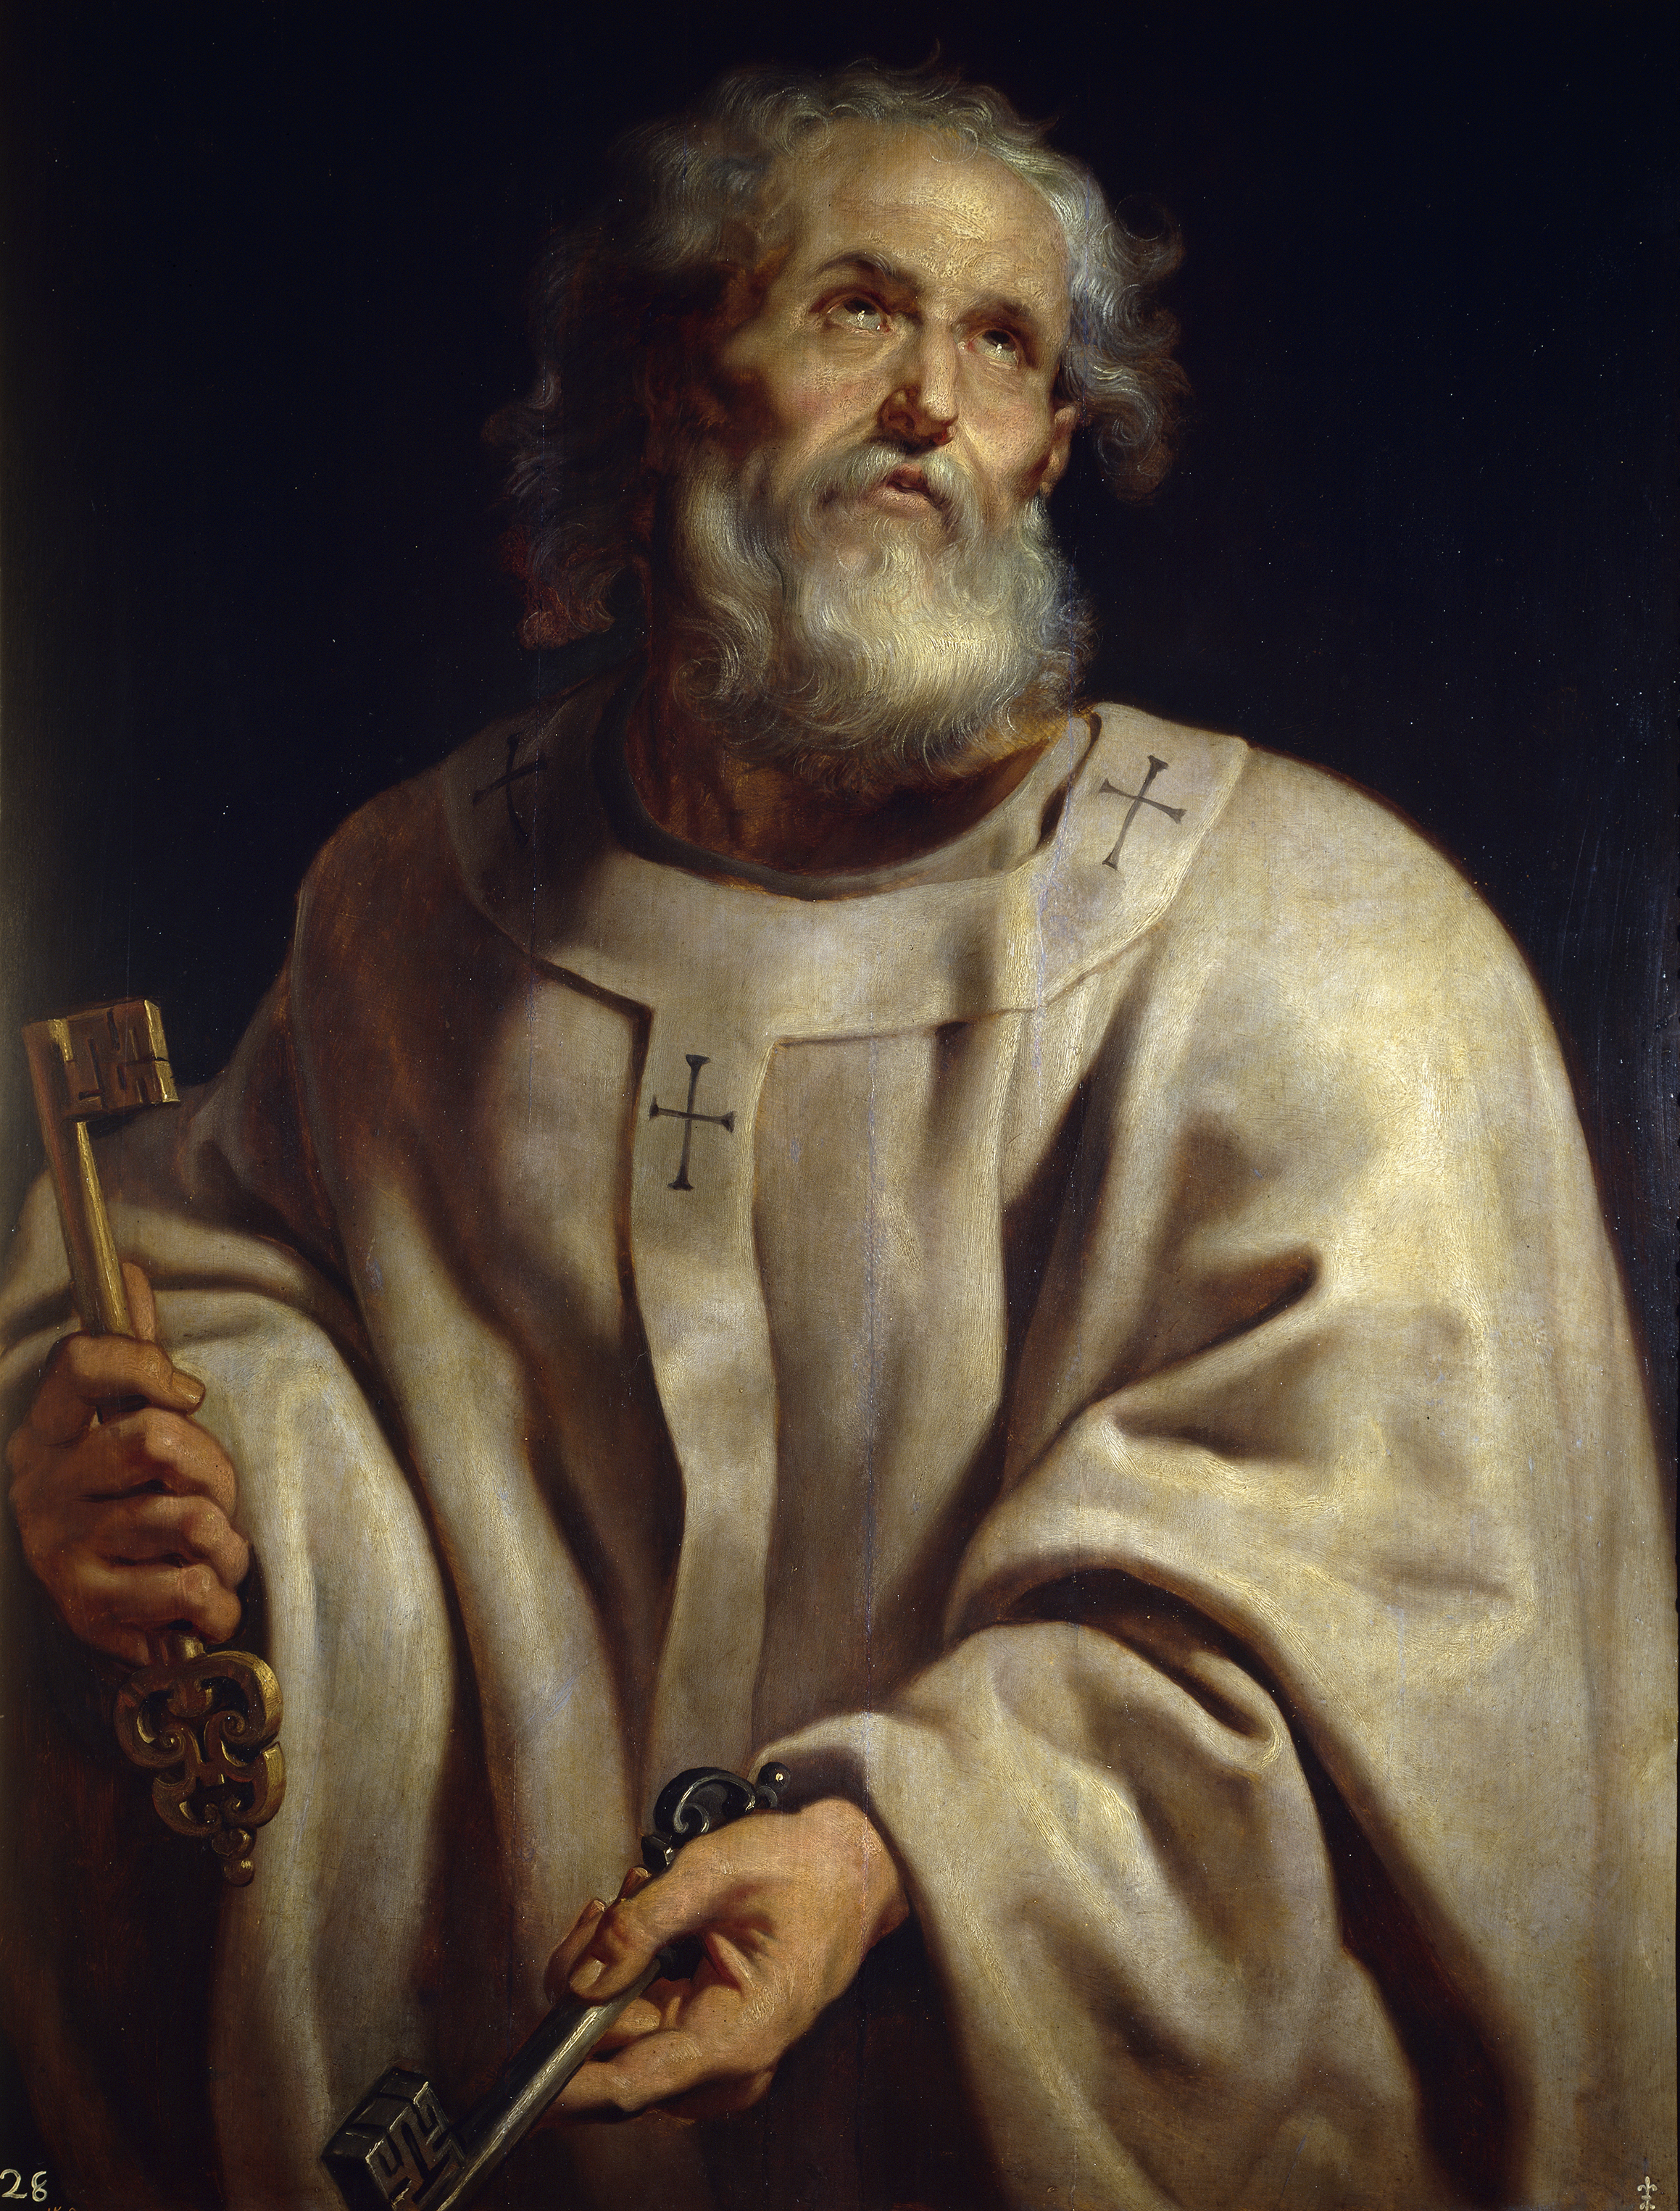 1st Pope: From Wikimedia Commons